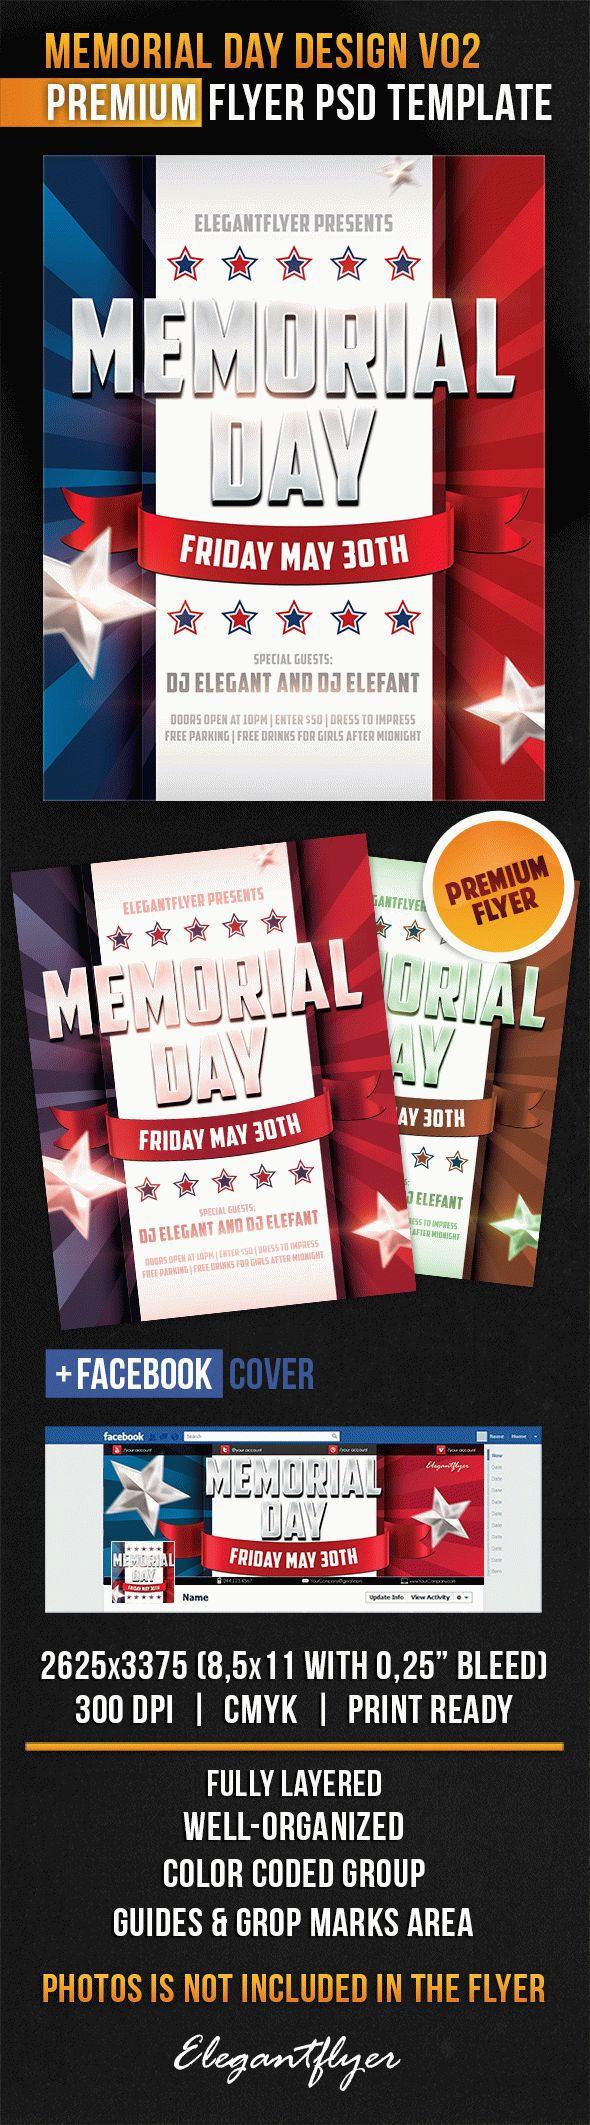 Memorial Day Design V02 – Flyer PSD Template + Facebook Cover